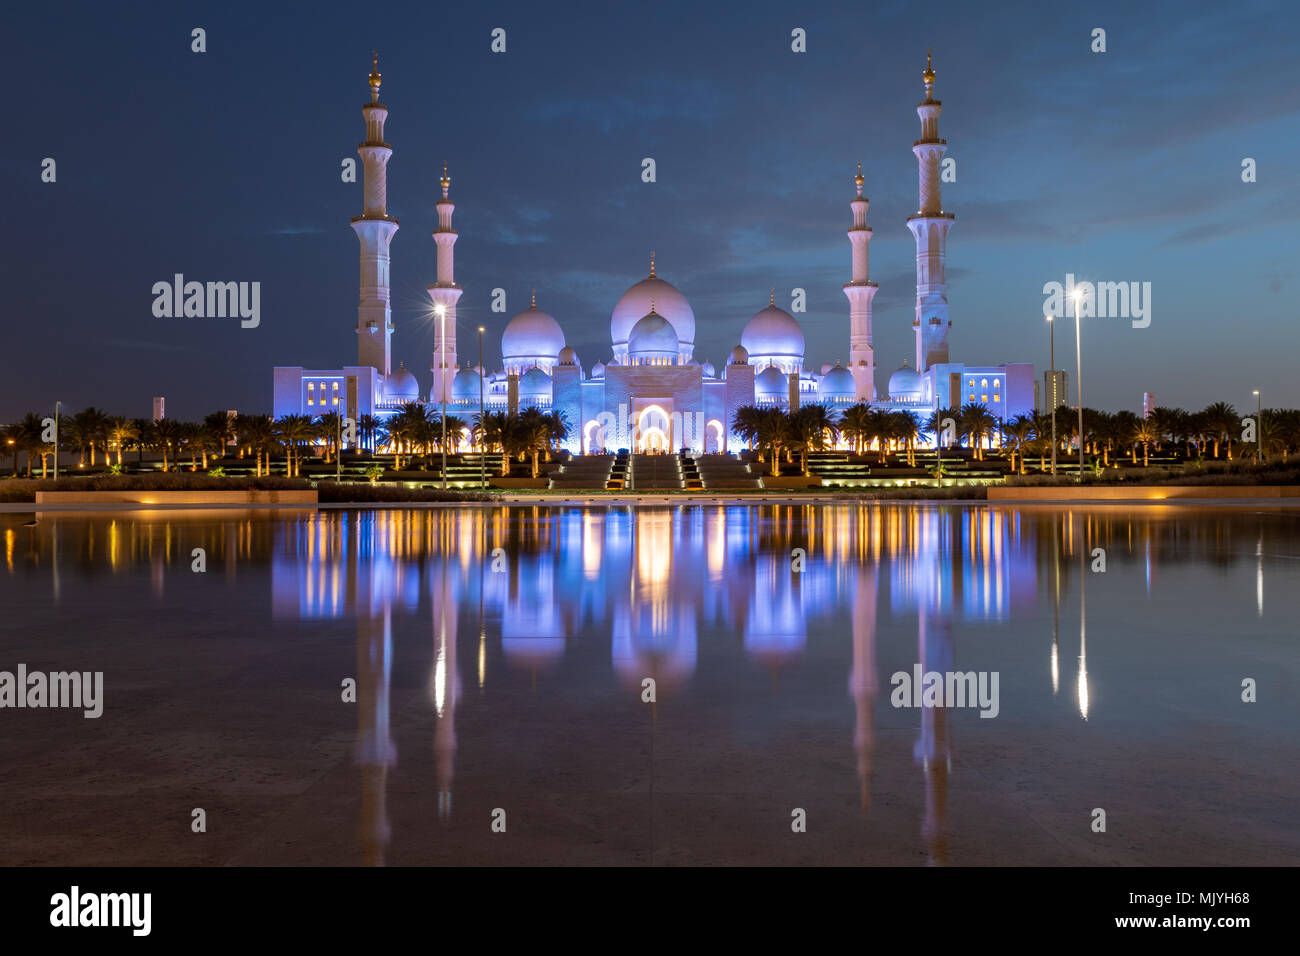 Sheikh Zayed Grand Mosque in Abu Dhabi, capital city of the United Arab Emirates. Mosque is built from Italian white marble. Reflection in lake - Stock Image